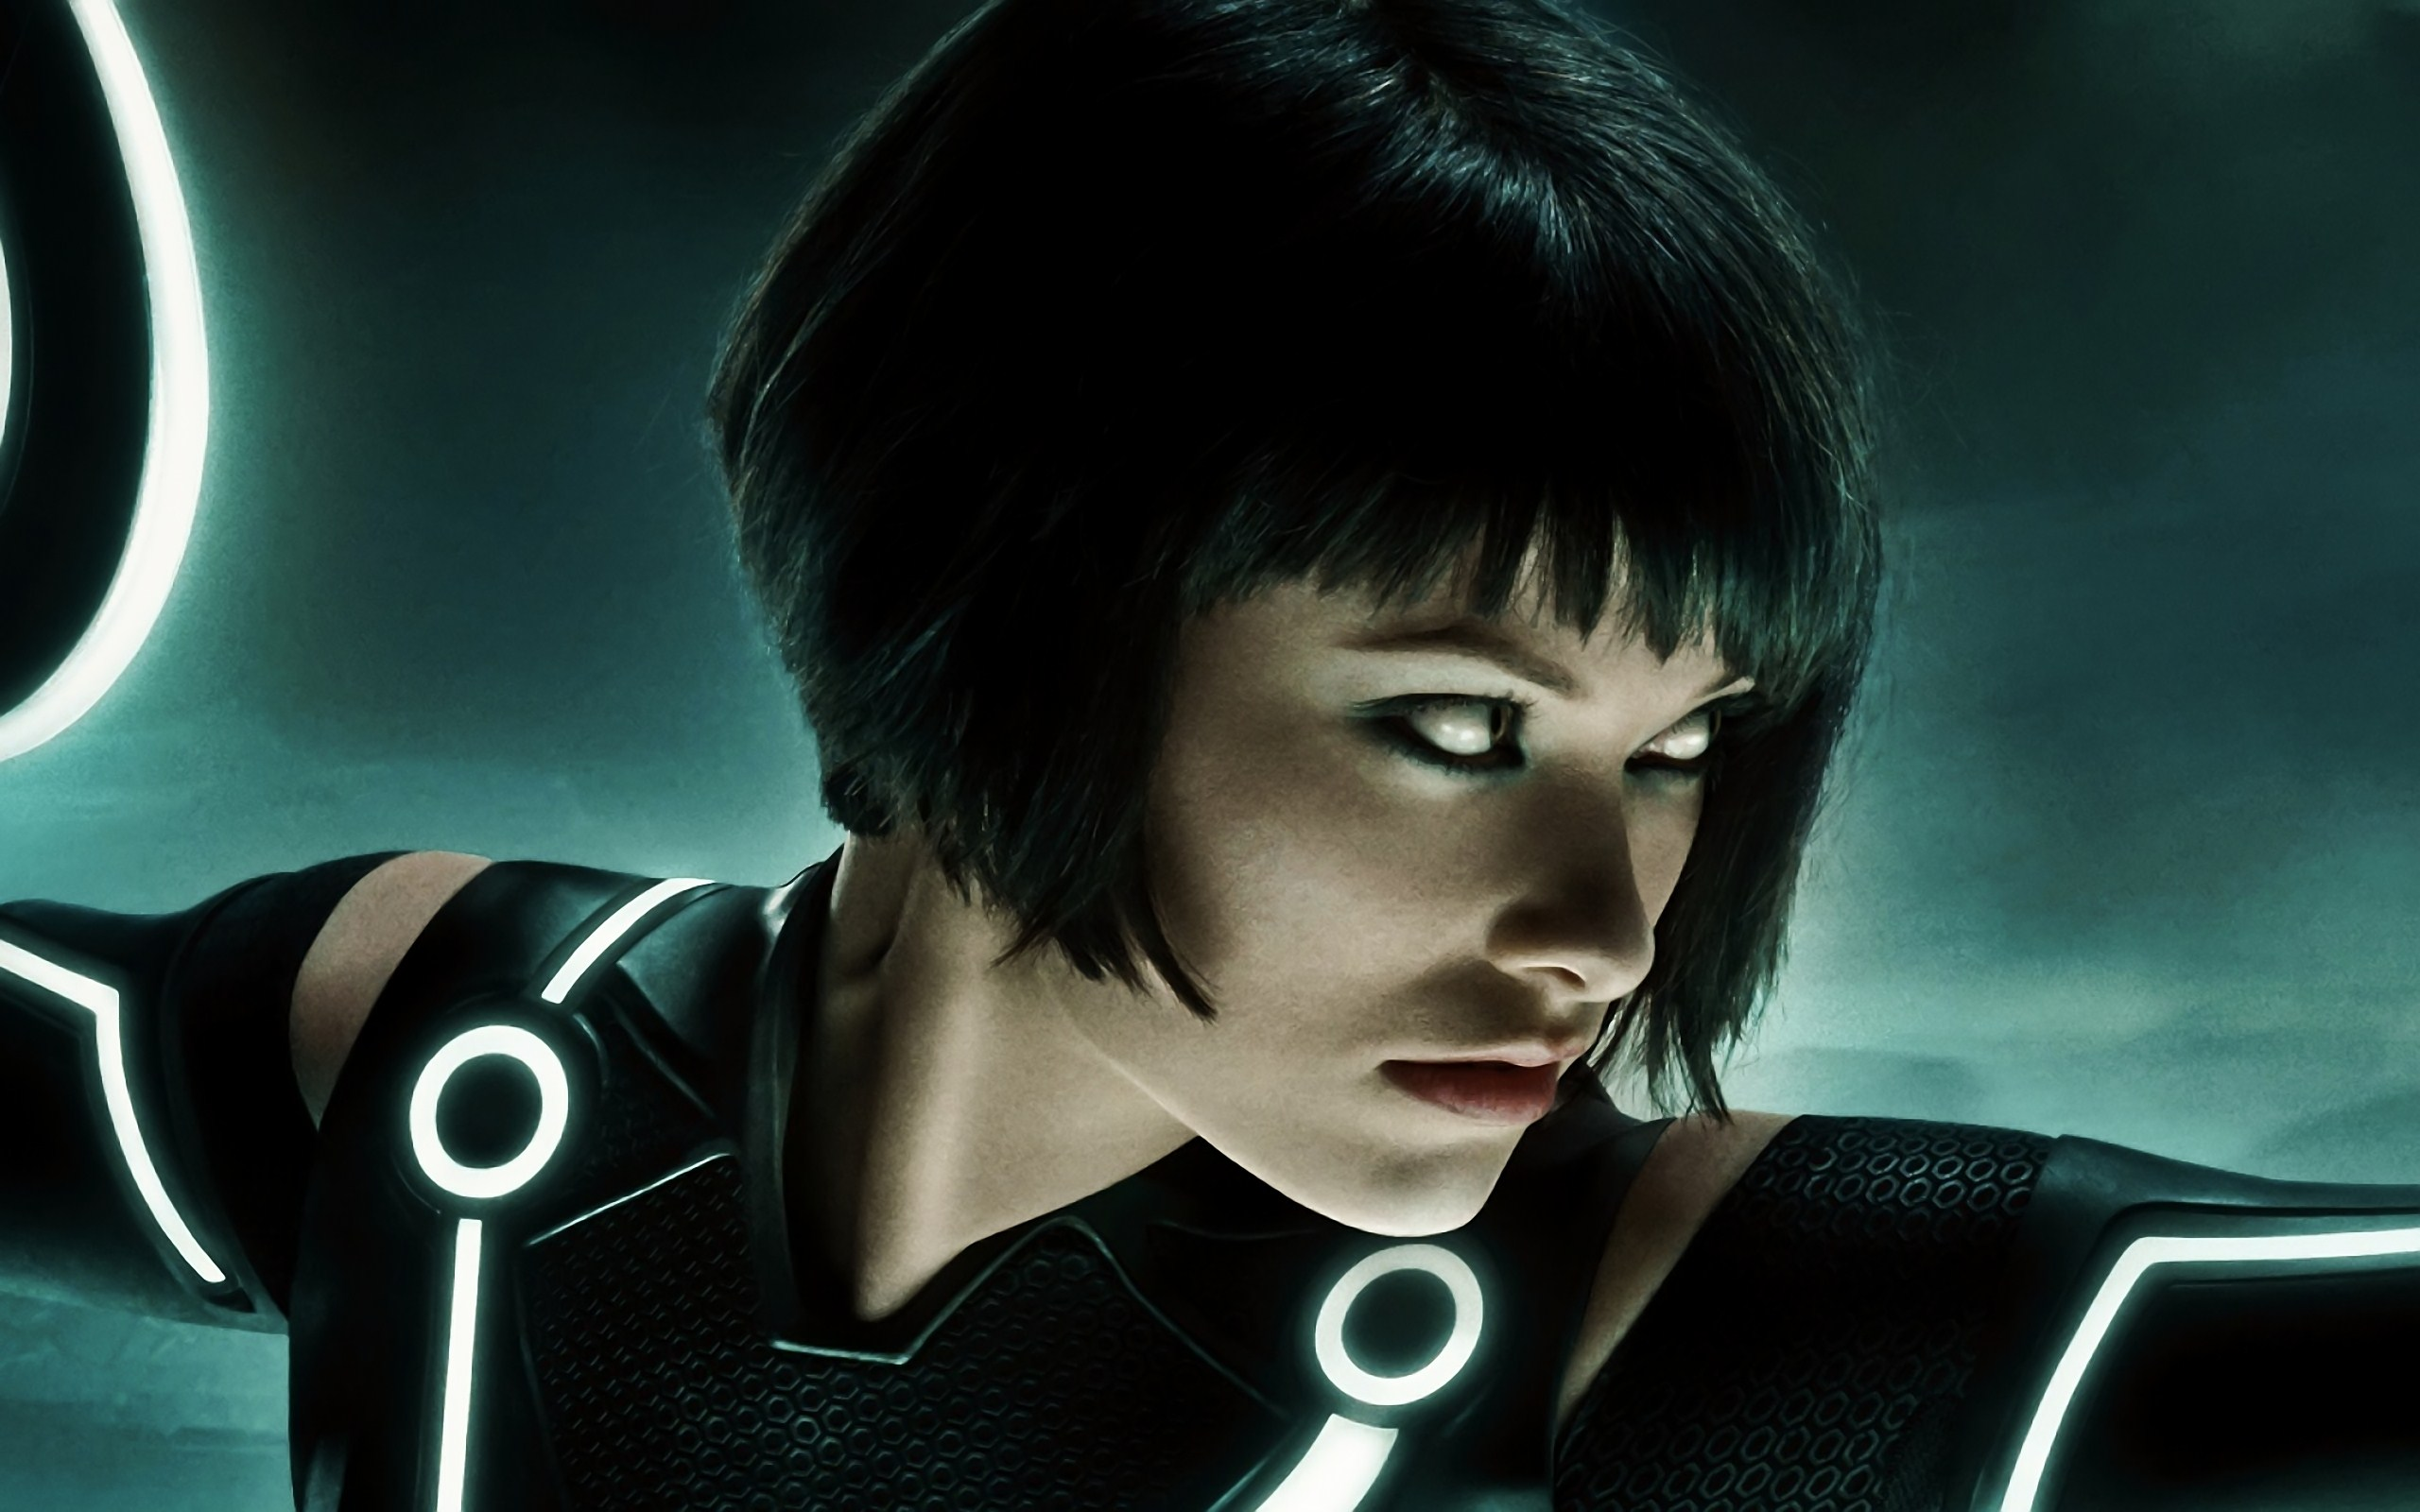 tron: legacy full hd wallpaper and background image | 2560x1600 | id